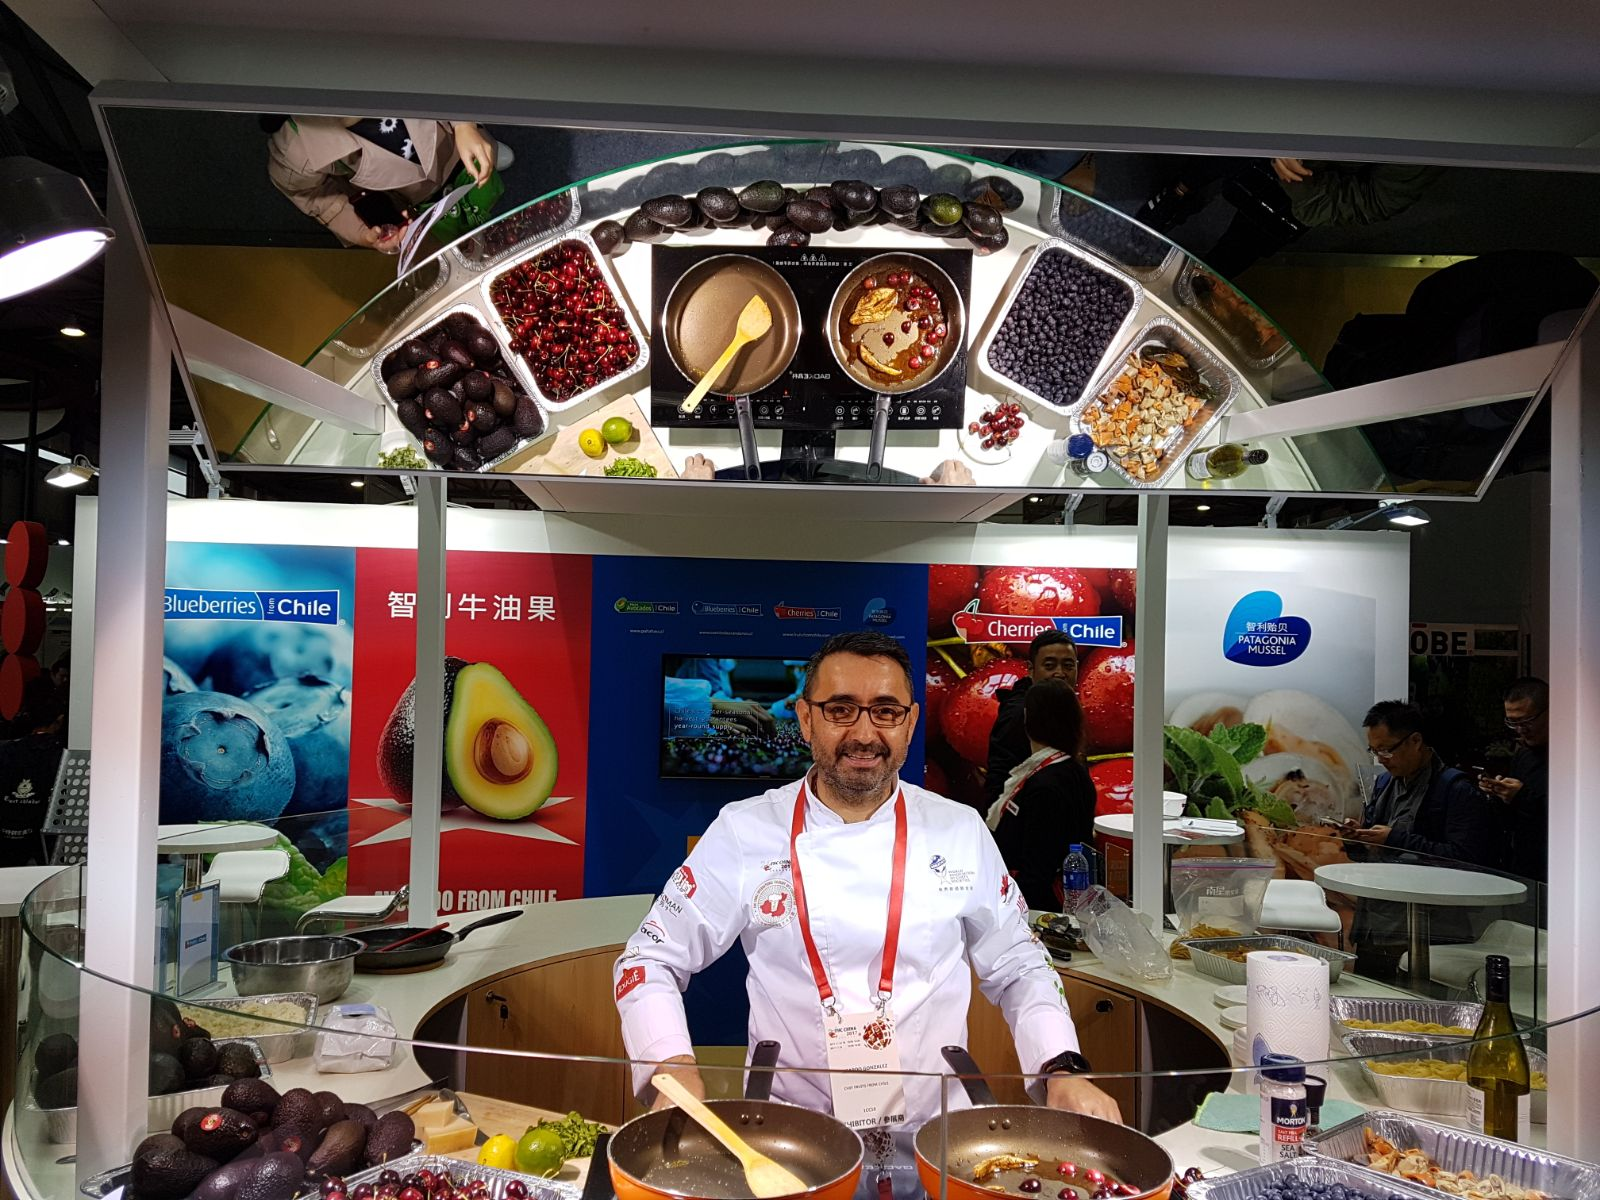 Chef Ricardo Gonzalez, FHC China 2017 asoex